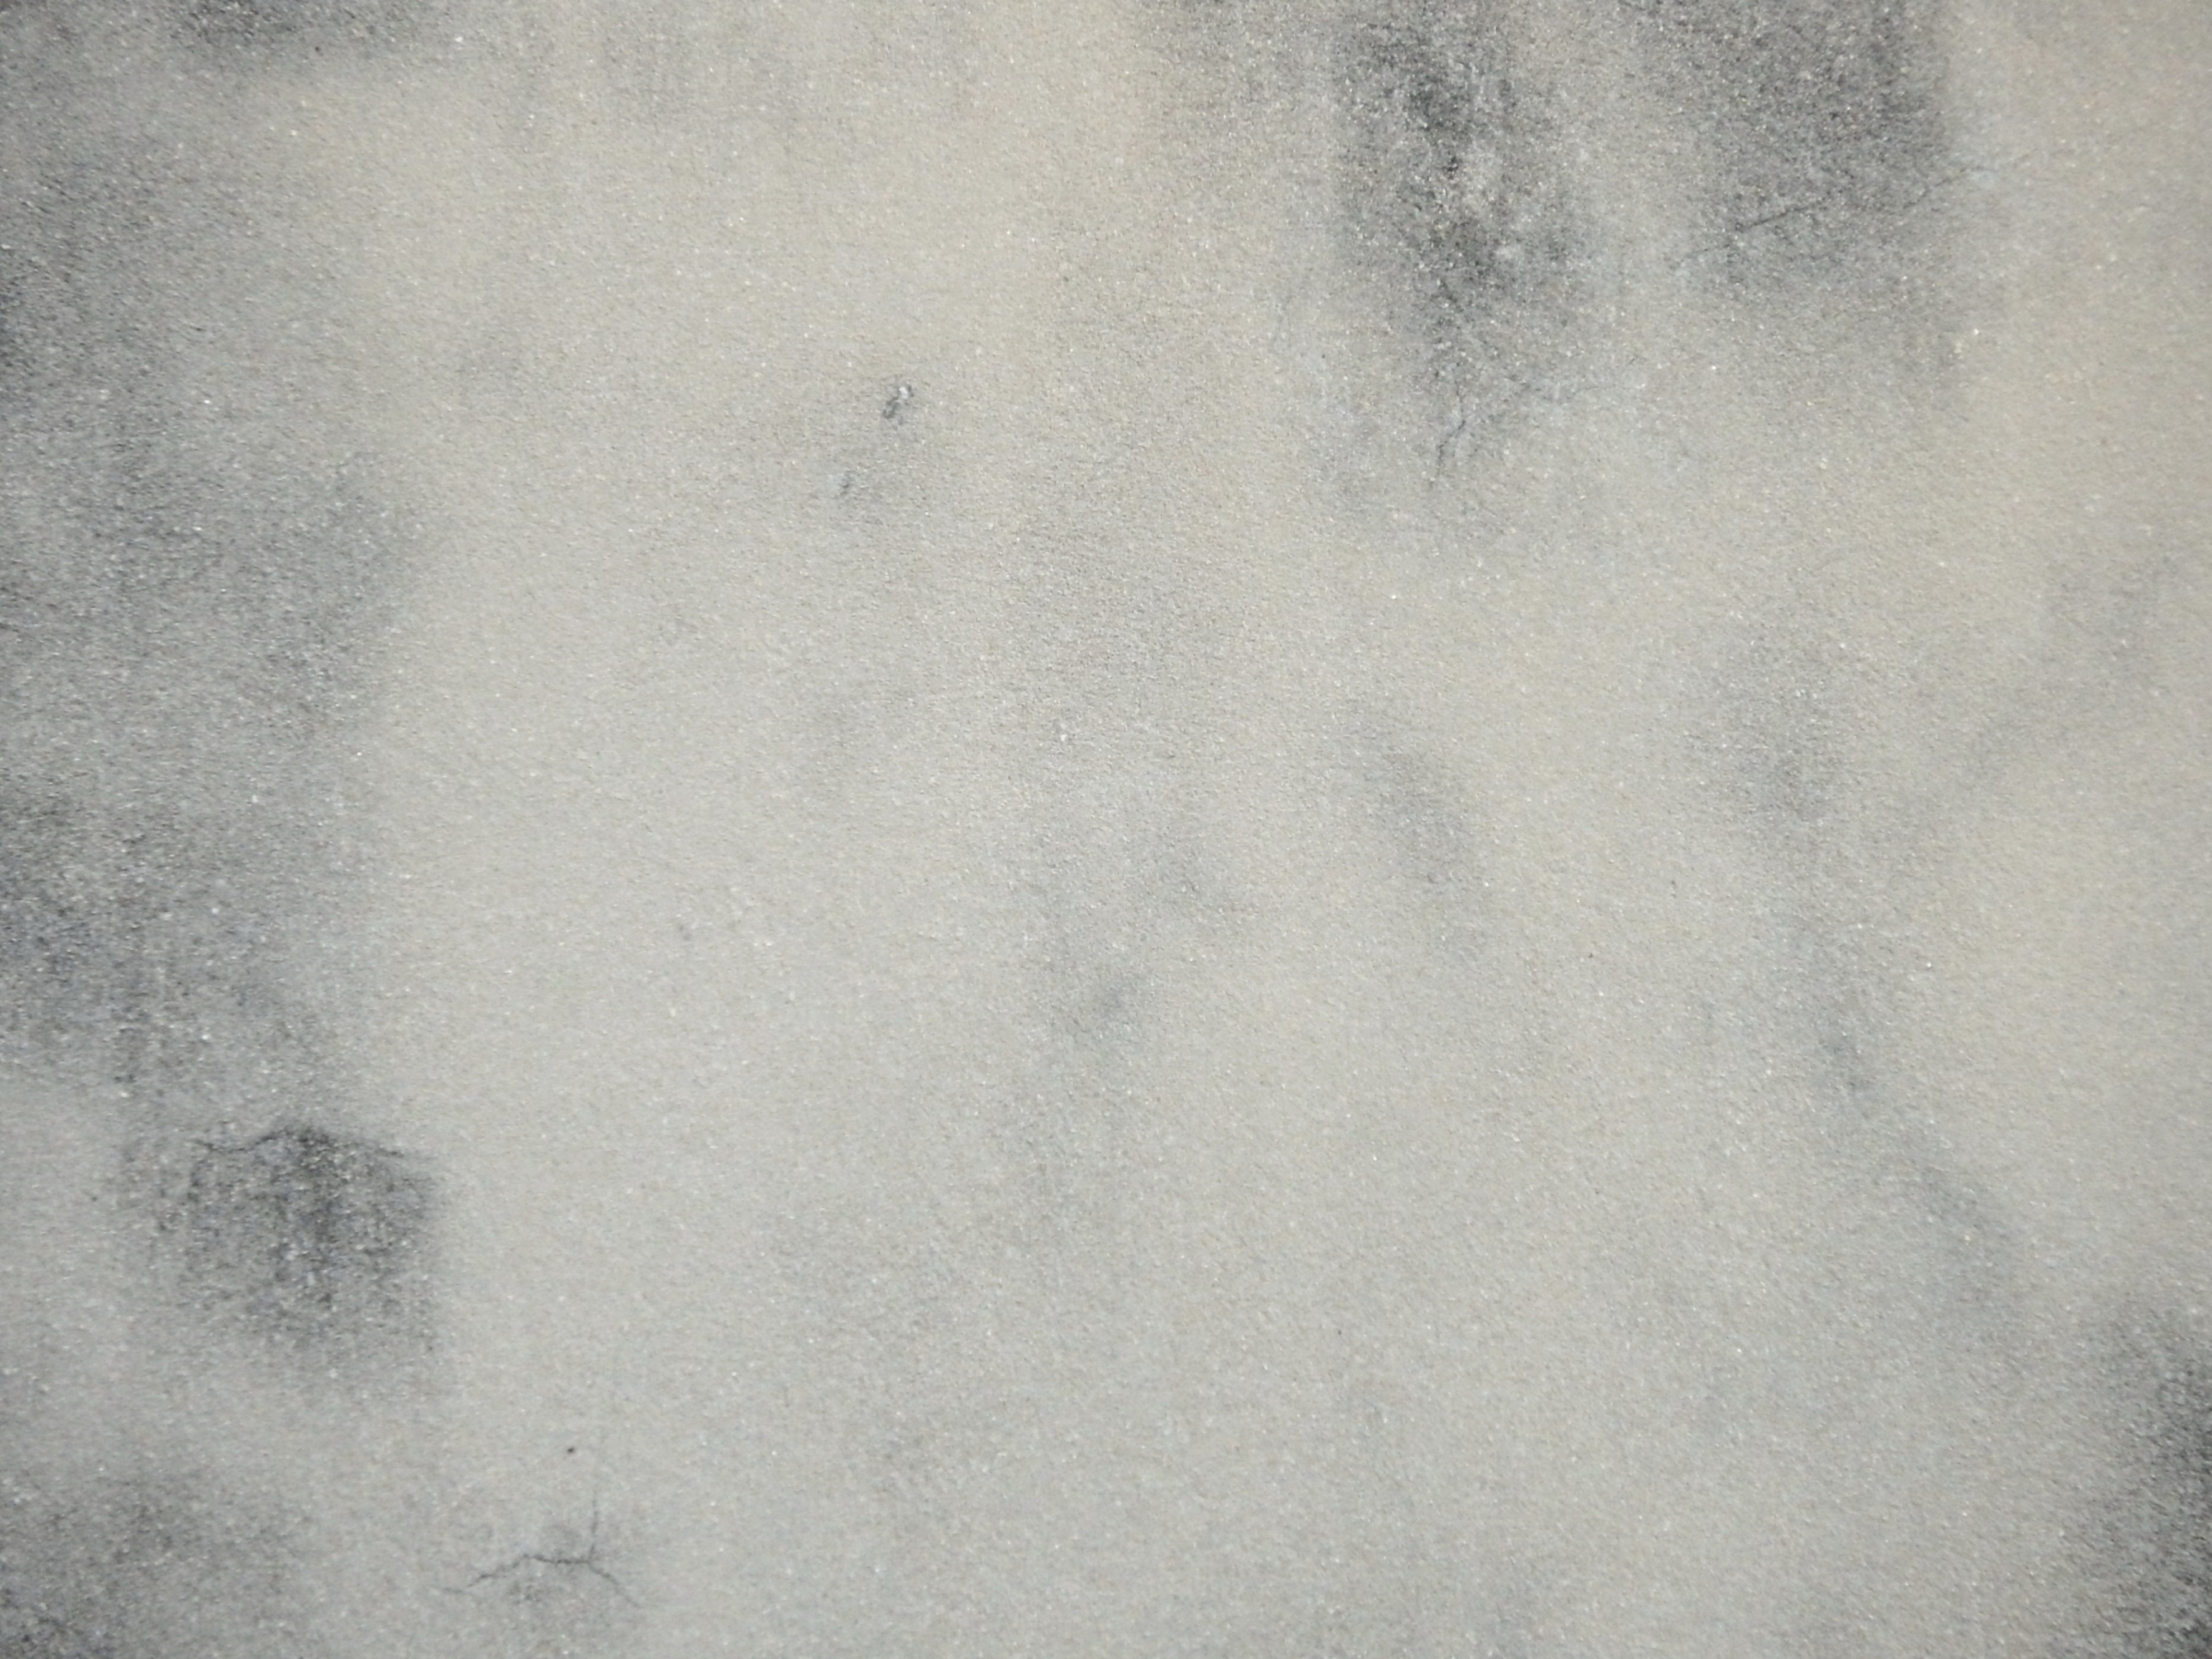 Grey Concrete Texture, Abandoned, Surface, Patterned, Retro, HQ Photo